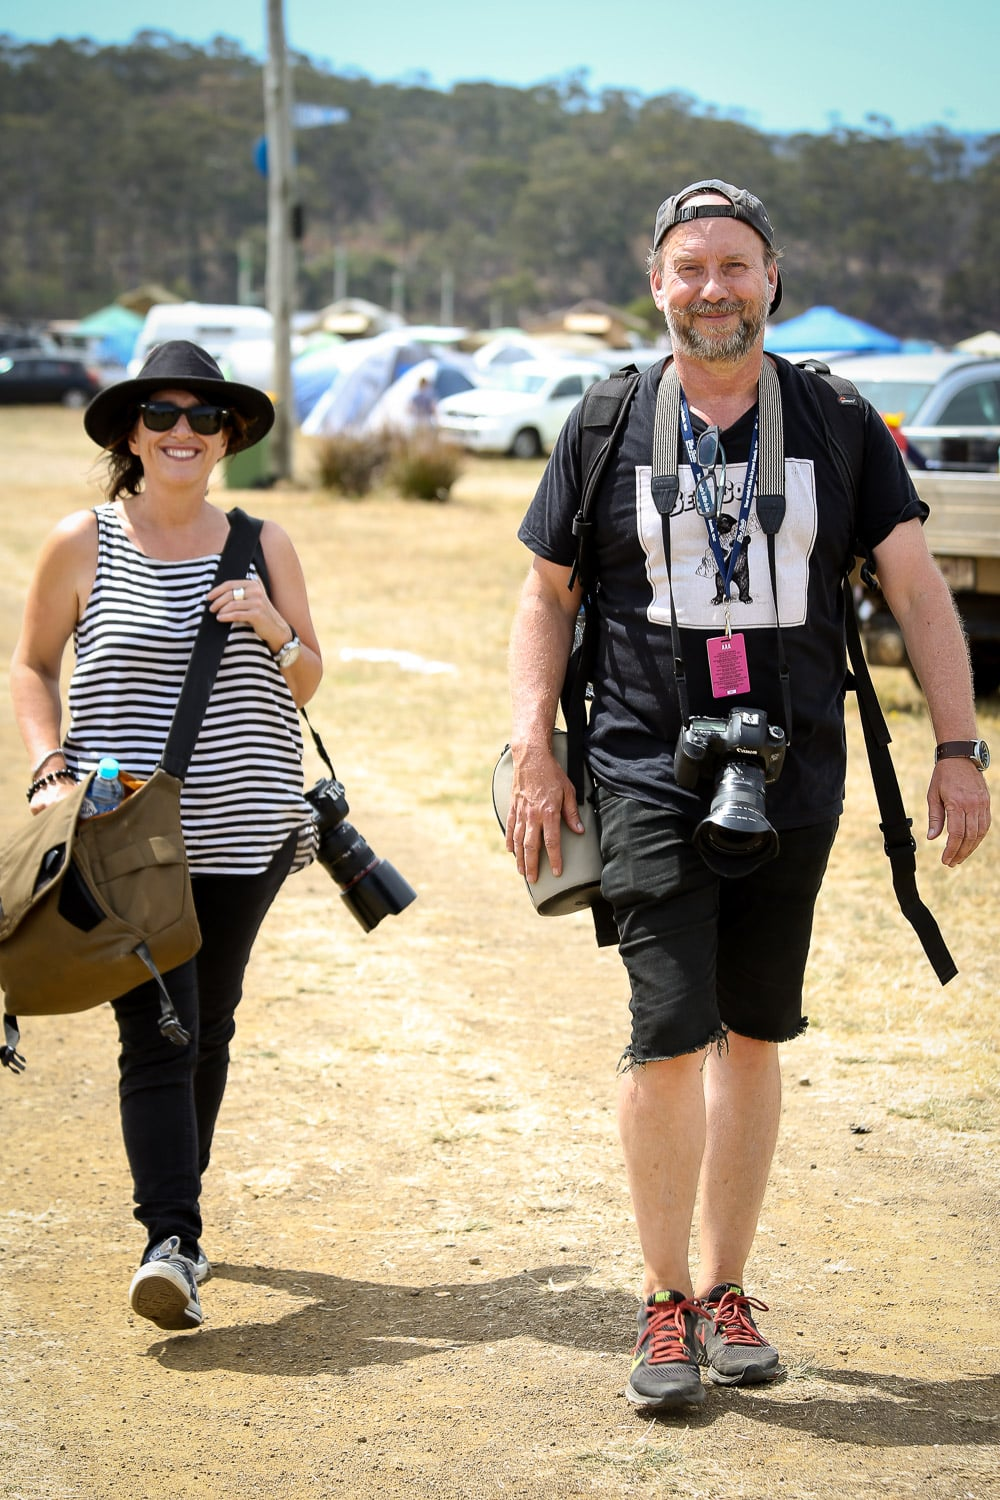 Cathy and Peter, Official Falls Festival Photographers.